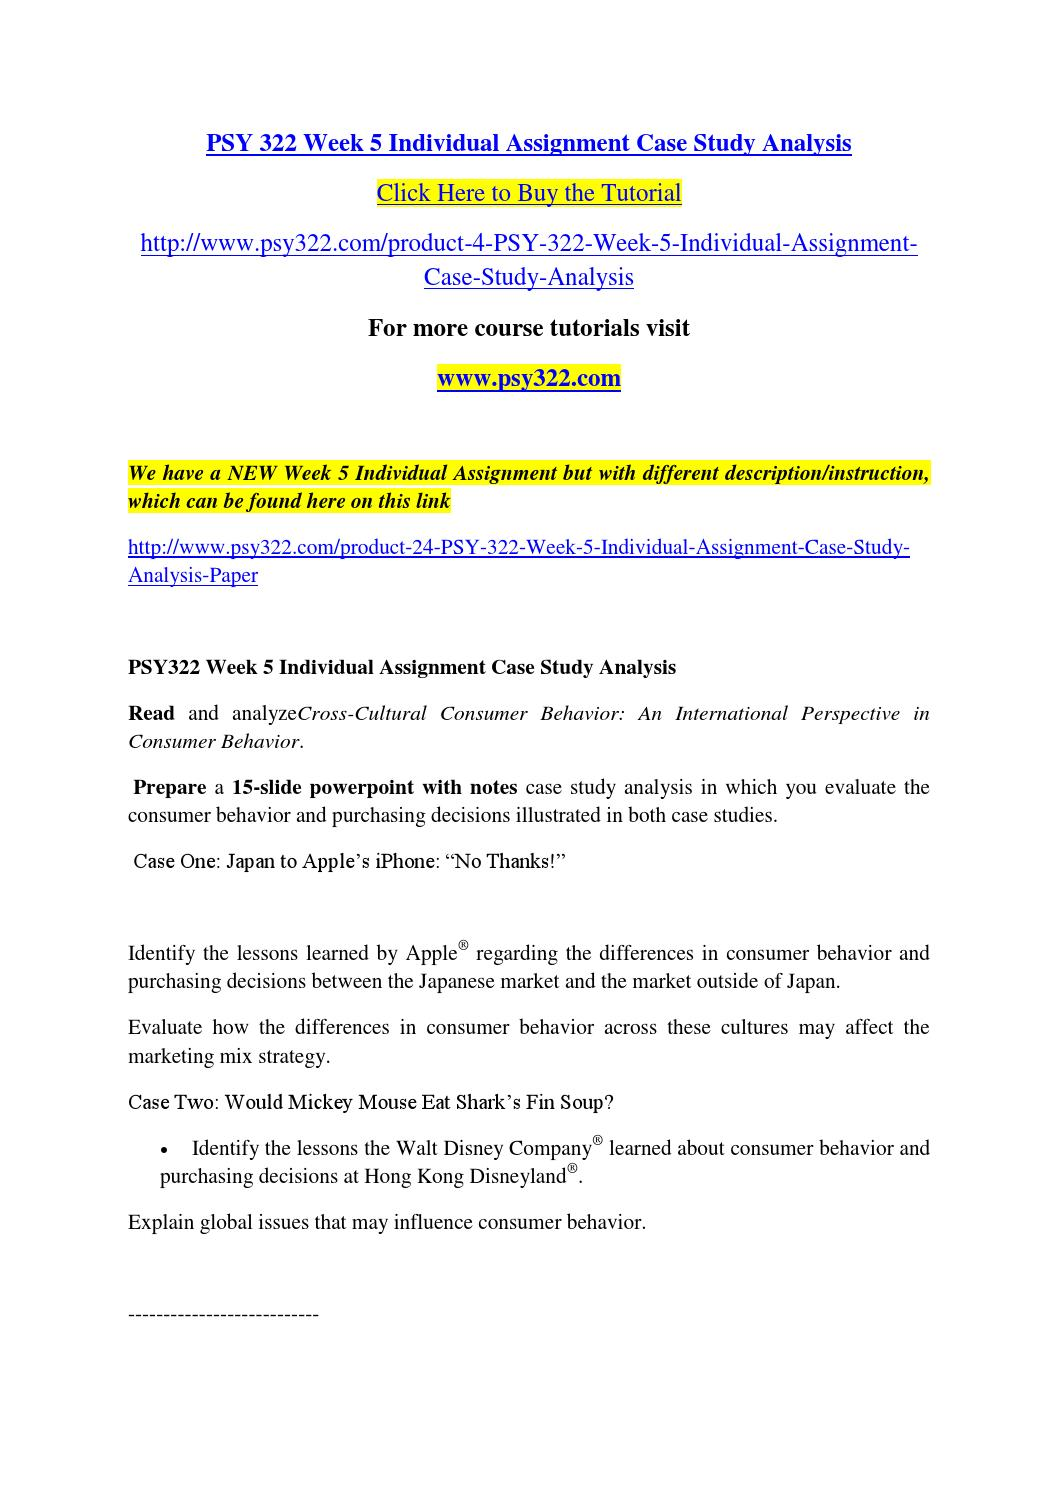 Psy 322 week 5 individual assignment case study analysis by